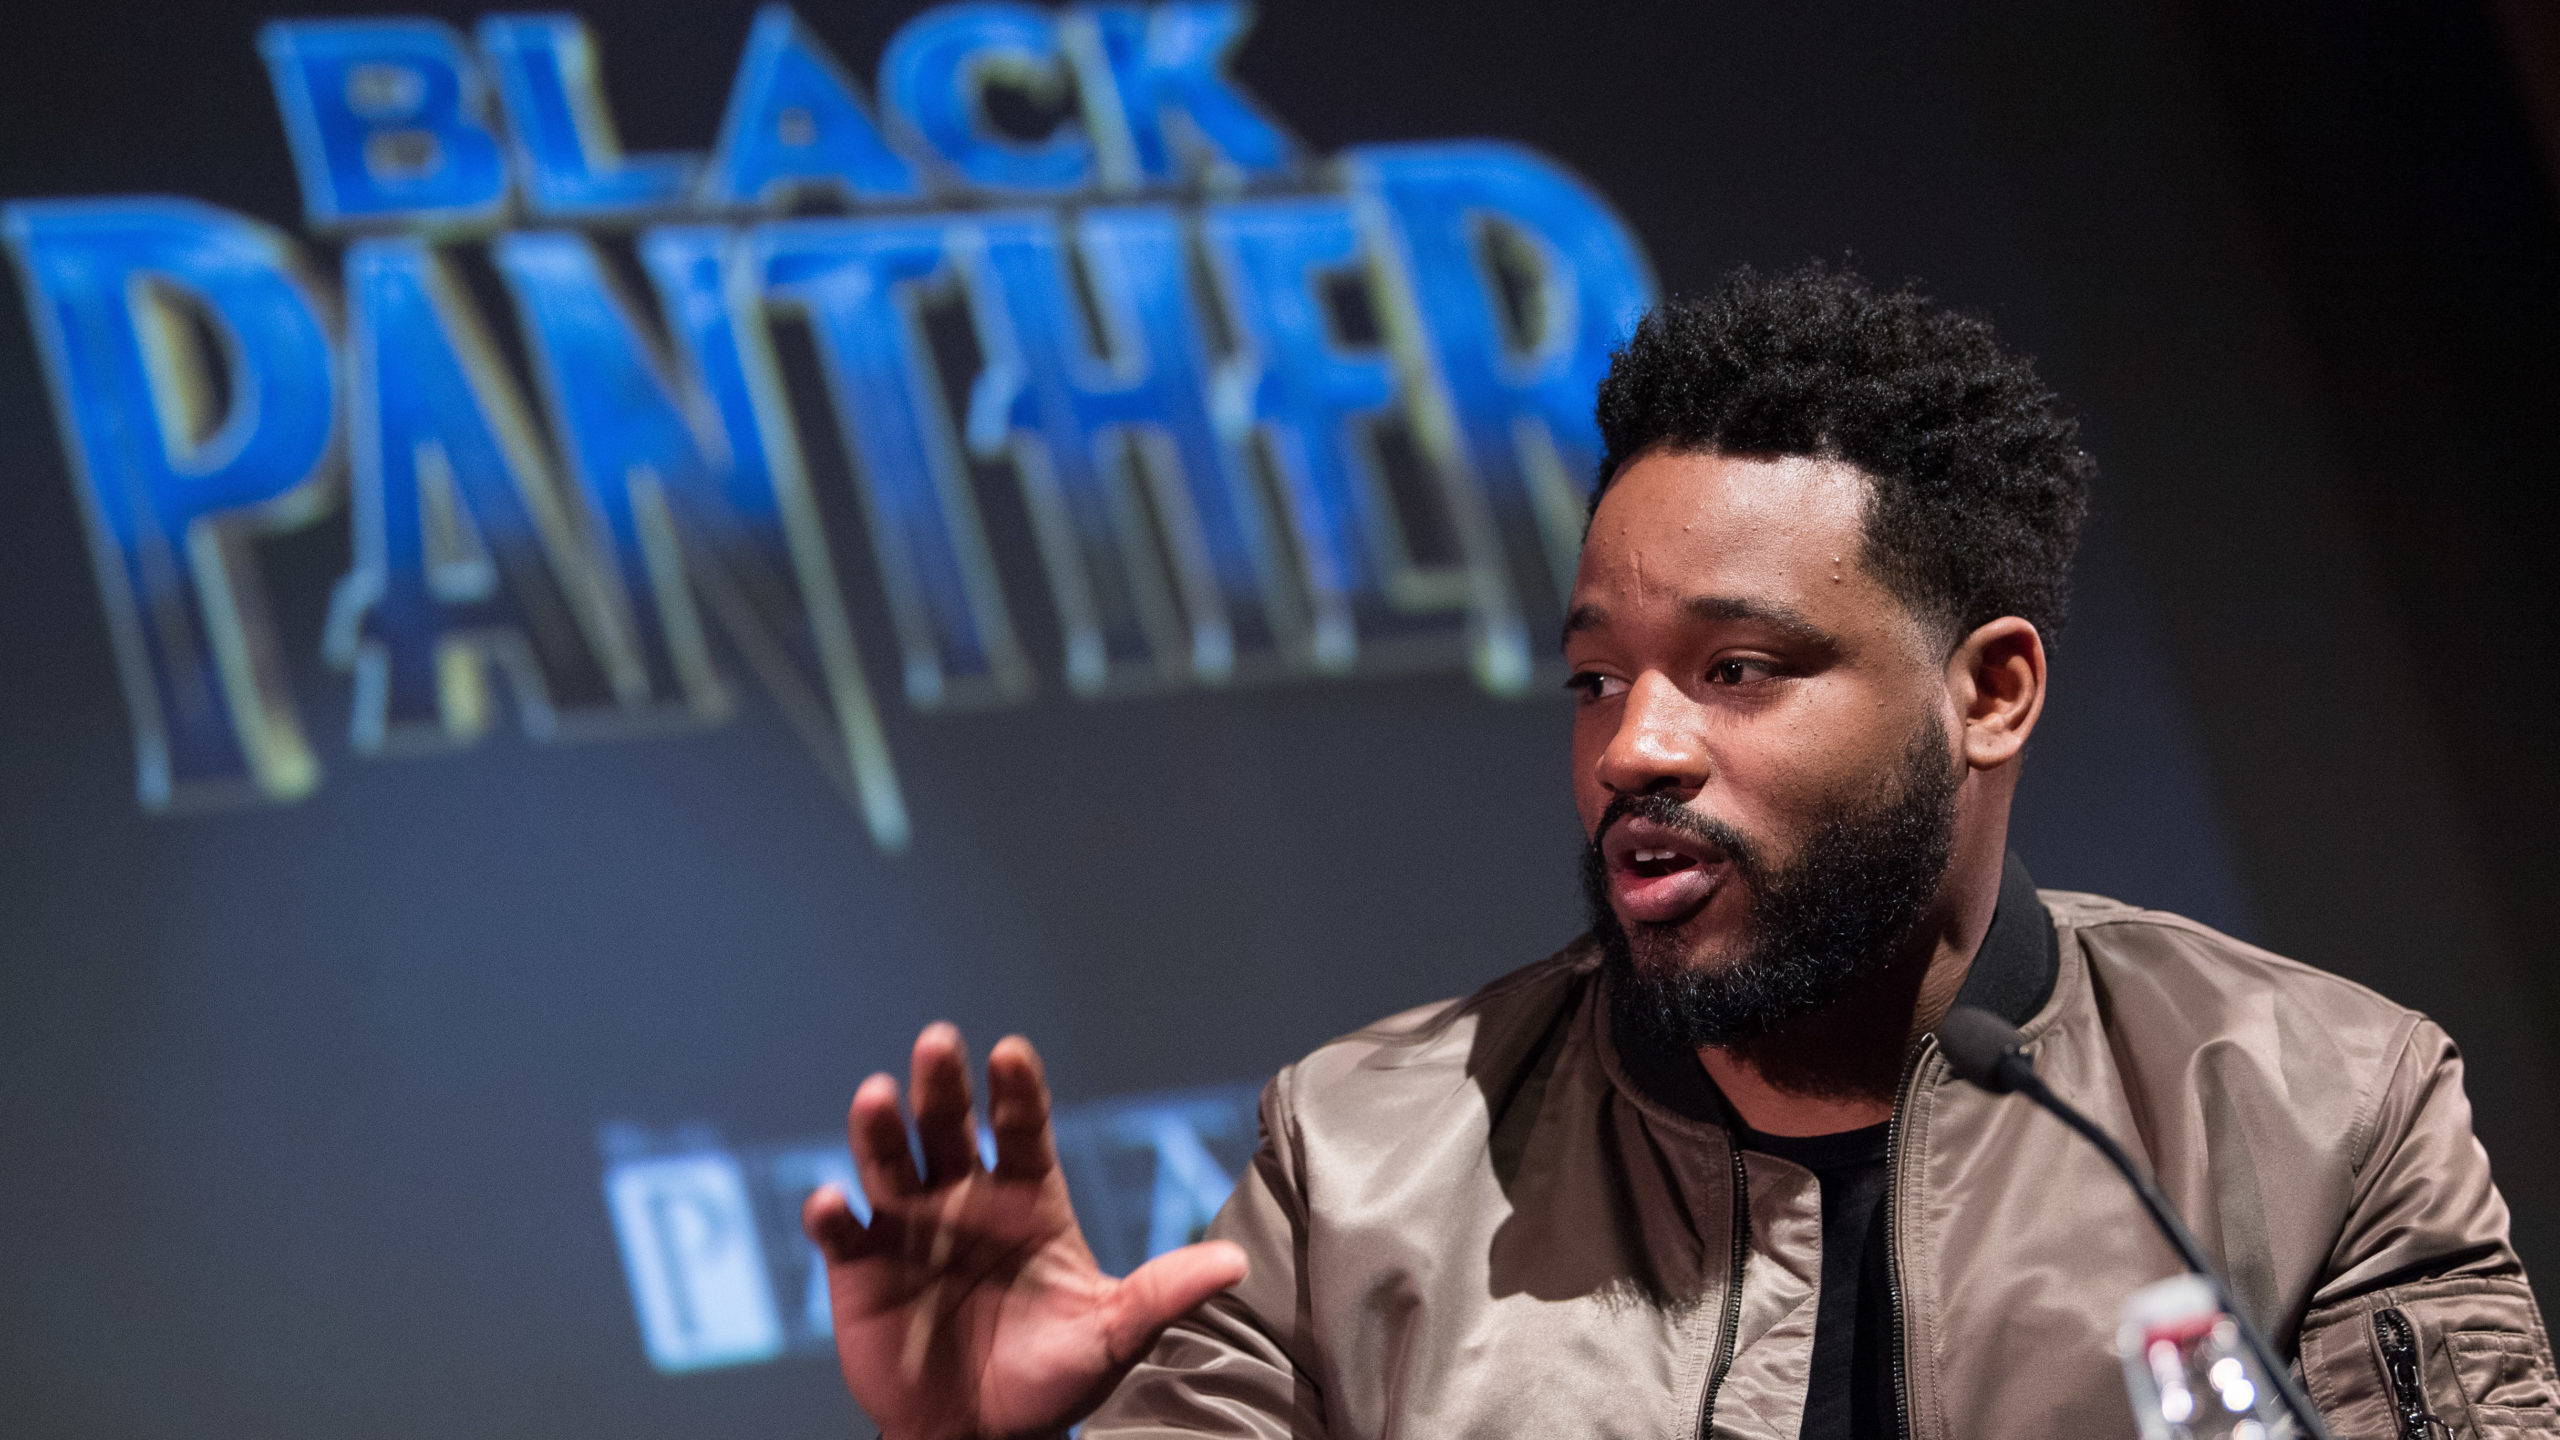 Ryan Coogler at Black Panther preview